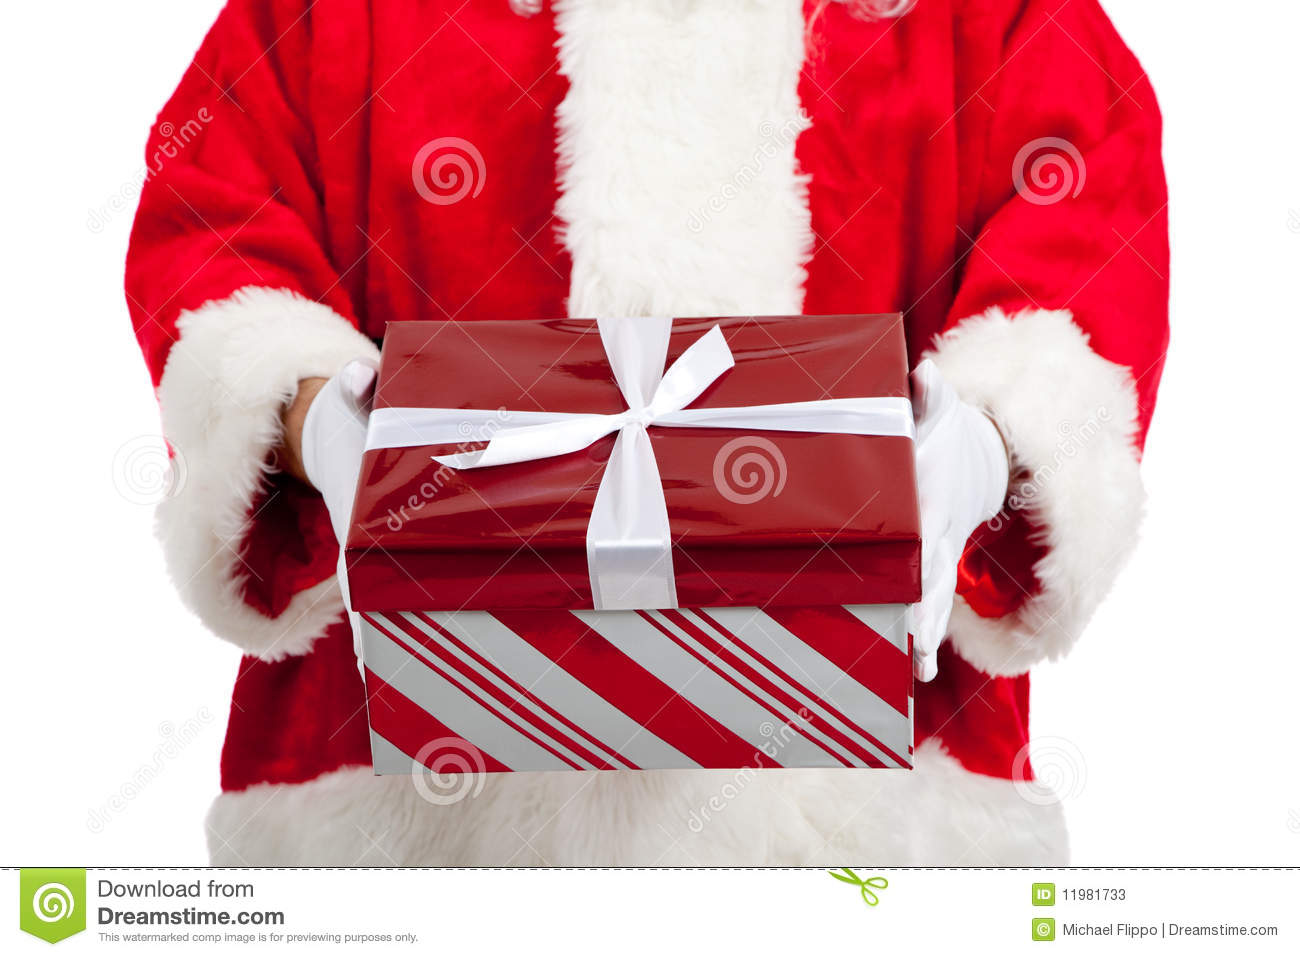 Santa Claus Giving Christmas Presents Stock Image - Image ...